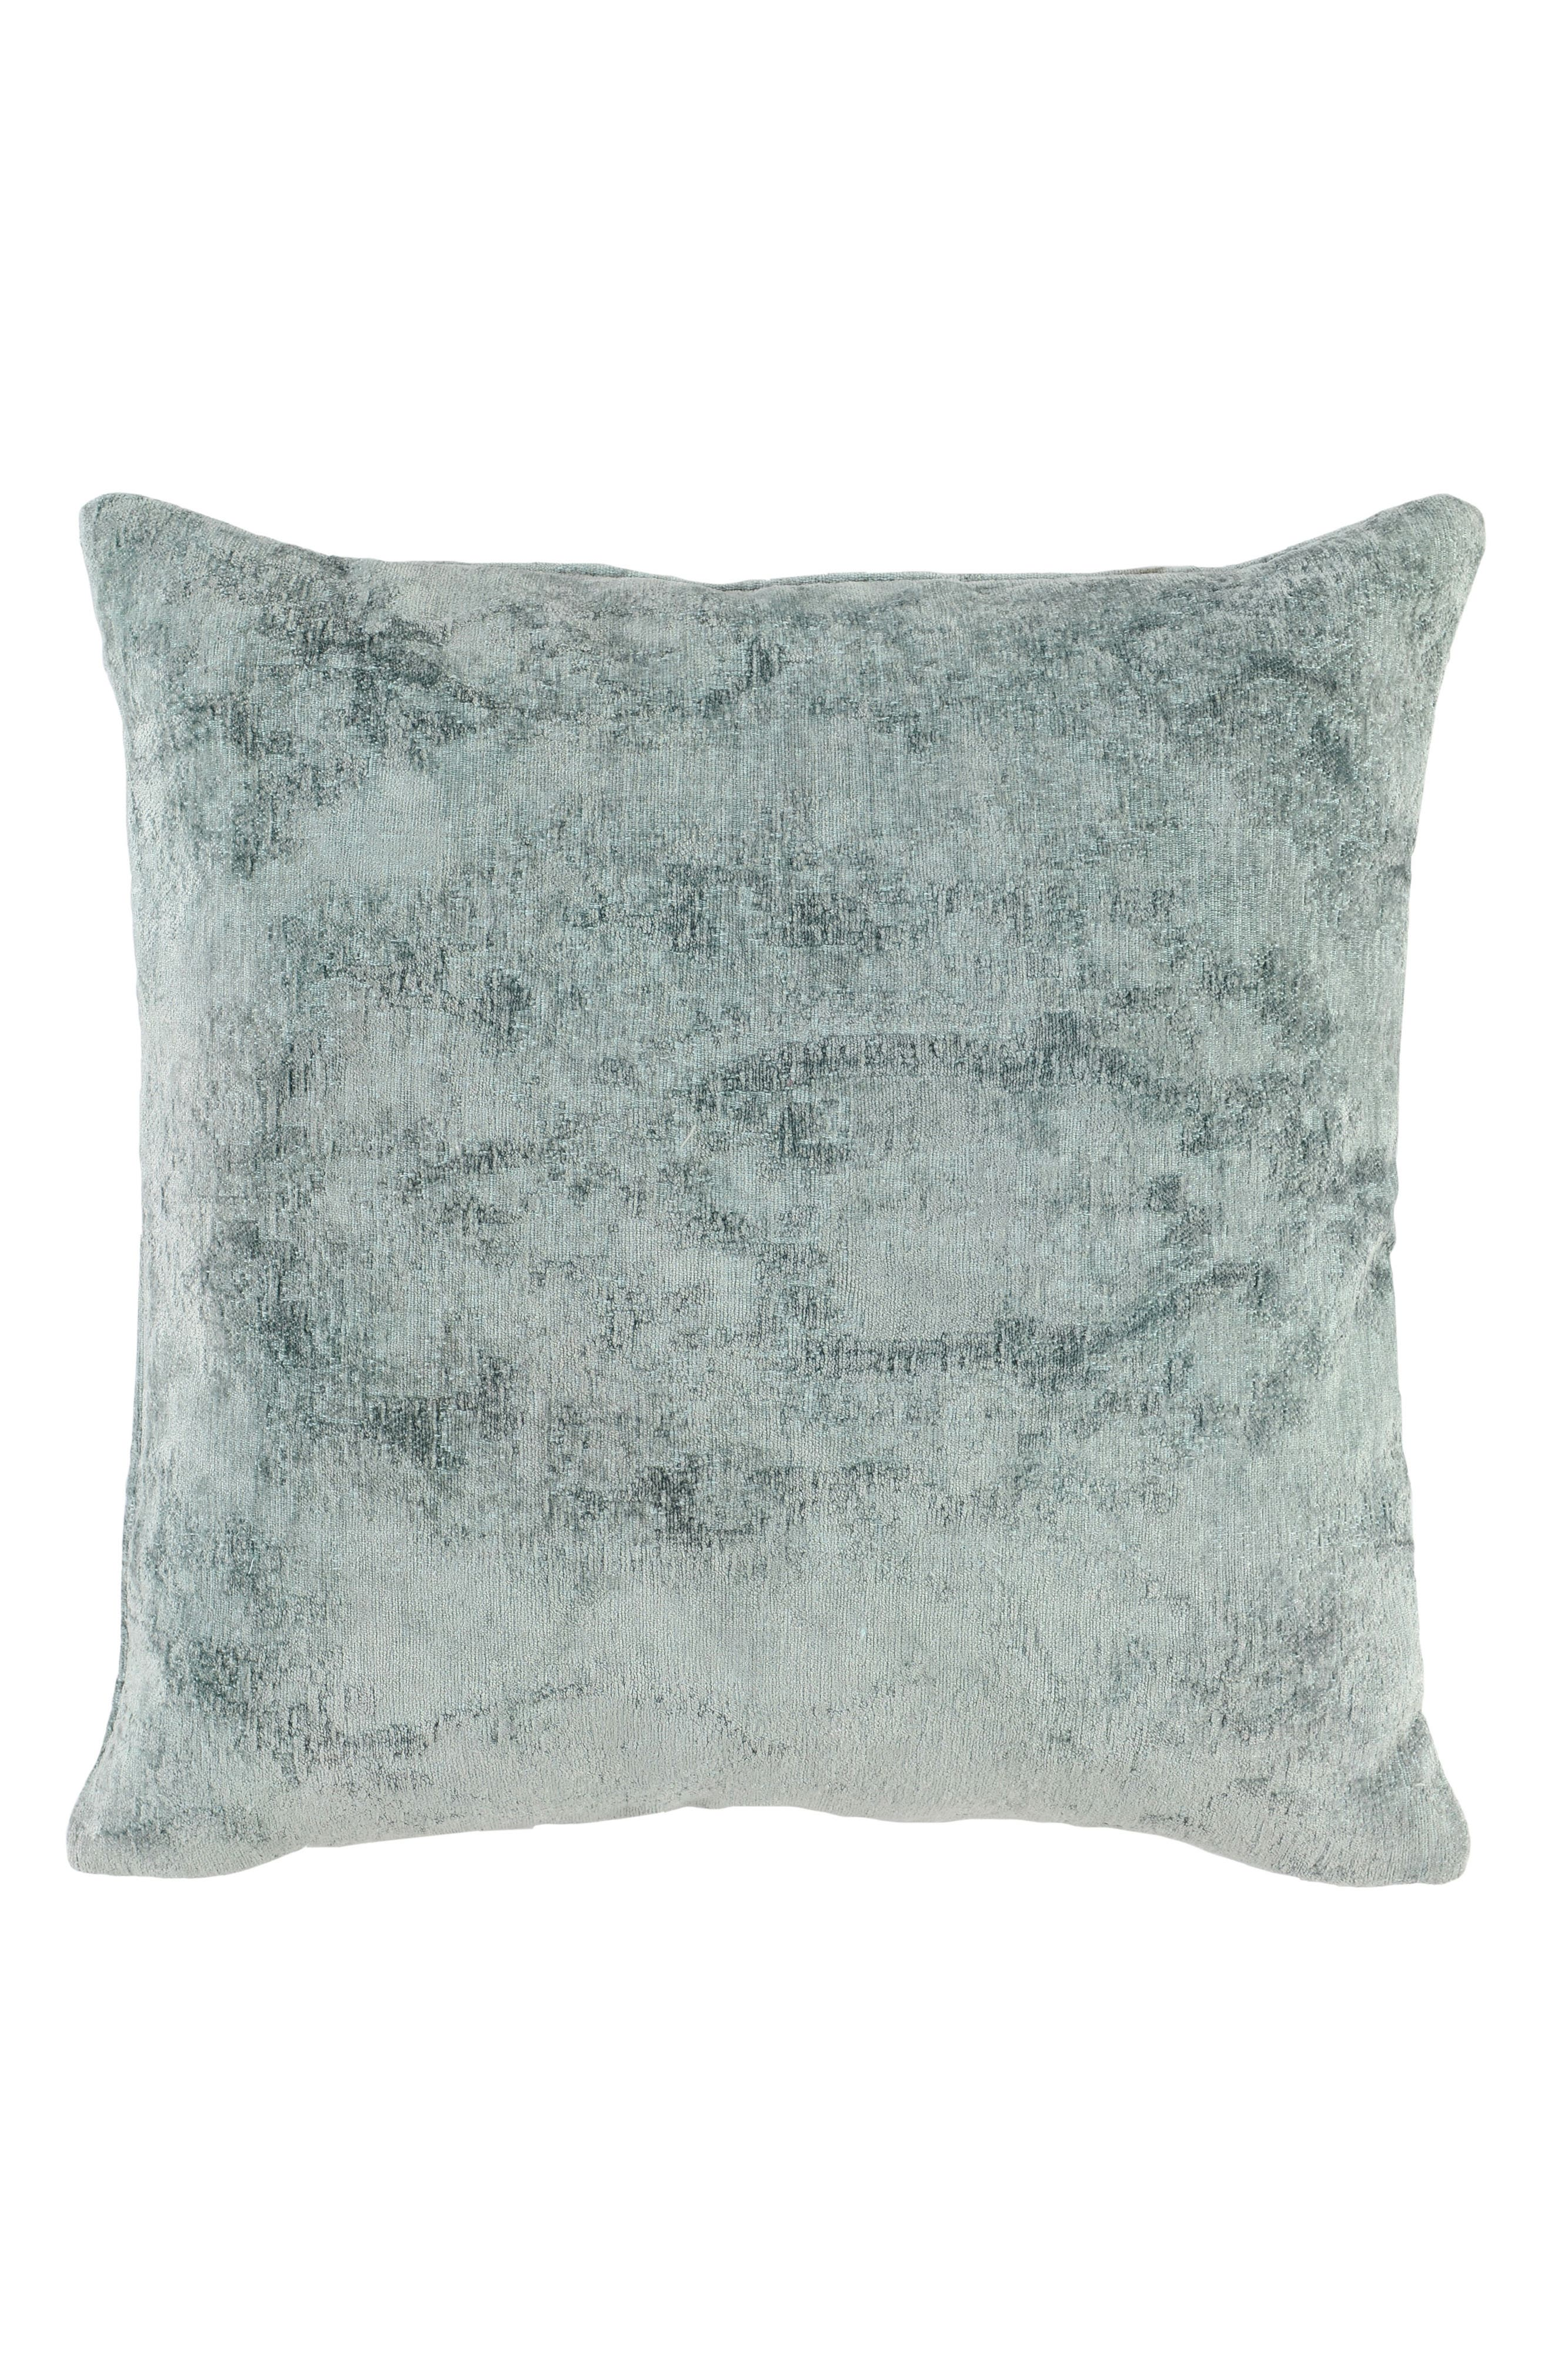 Oliver Accent Pillow,                         Main,                         color, Sage